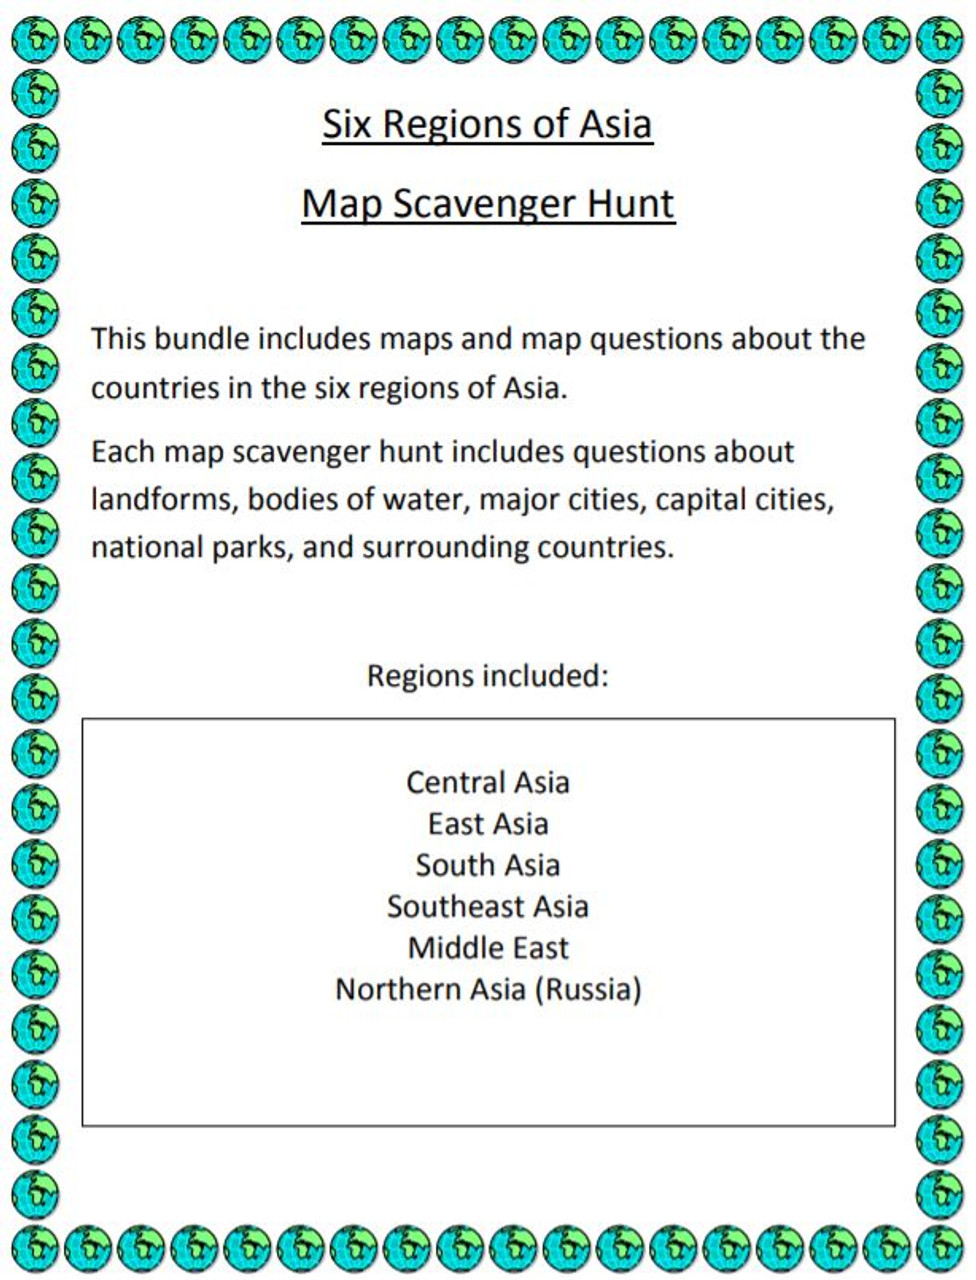 Six regions of asia map scavenger hunt amped up learning six regions of asia map scavenger hunt gumiabroncs Gallery